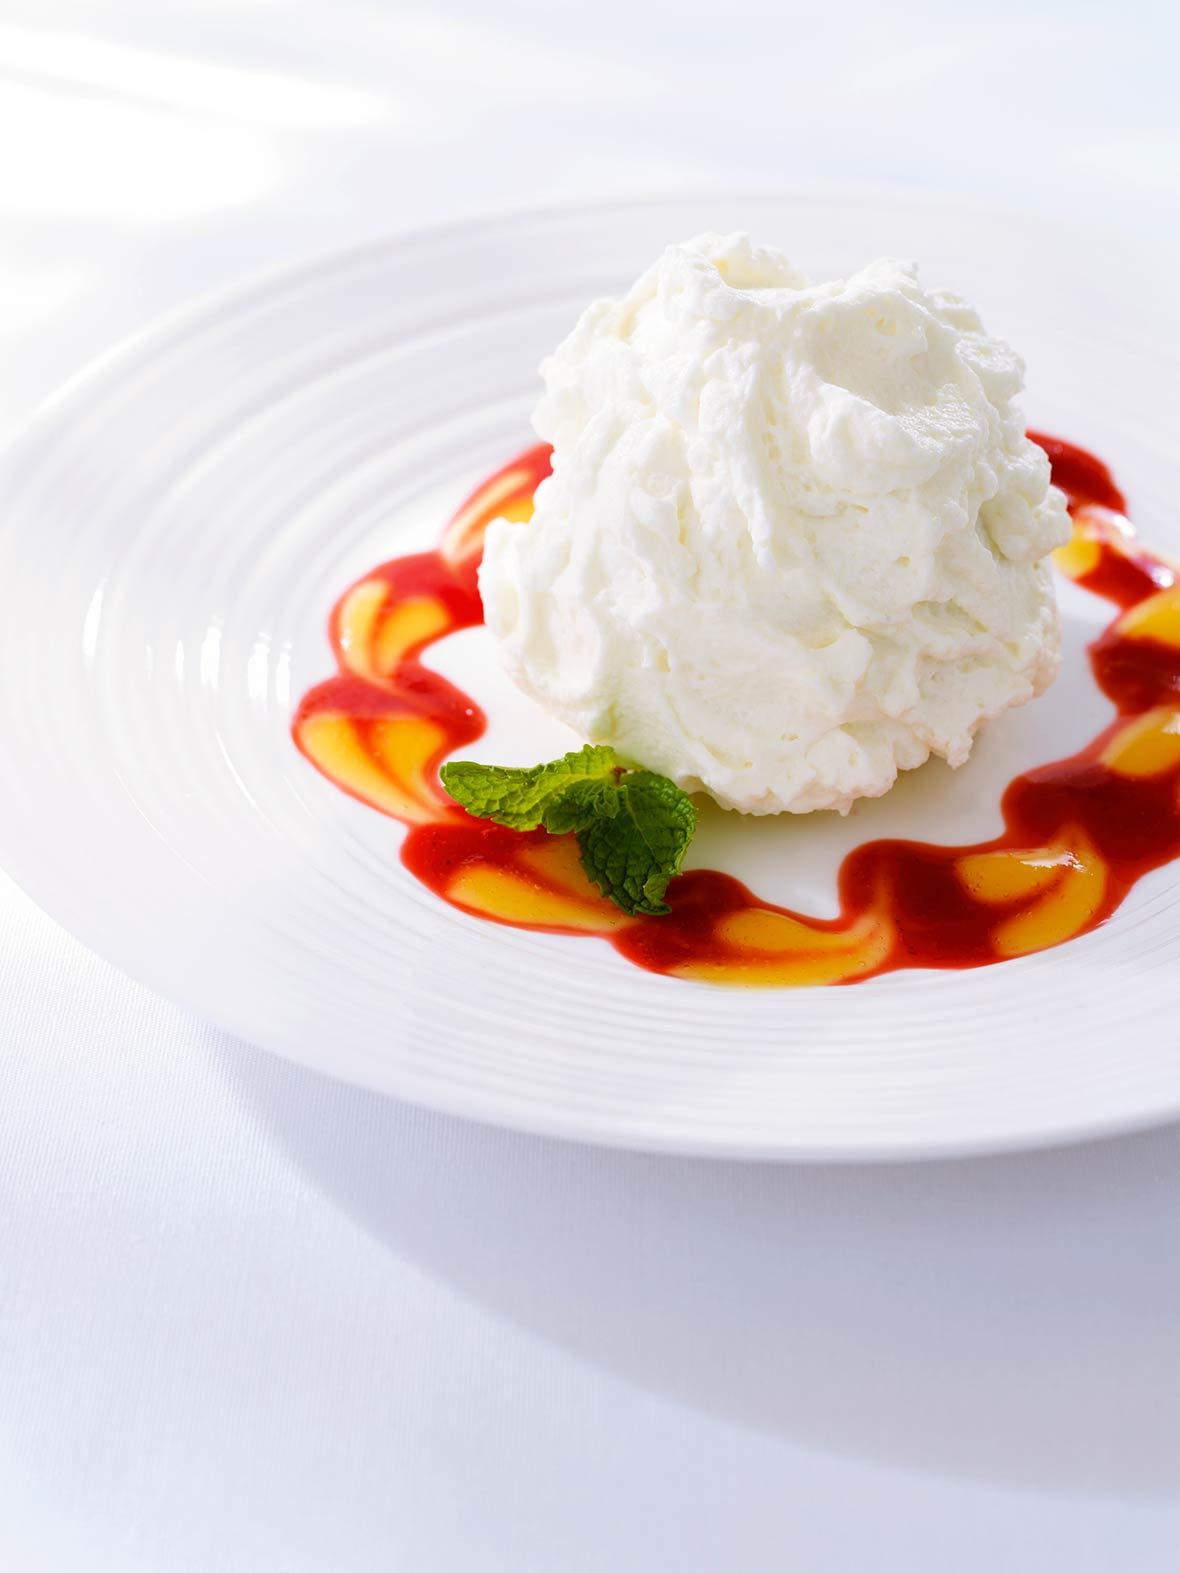 Plate of three milks cake, topped with whipped cream, with red and orange sauces